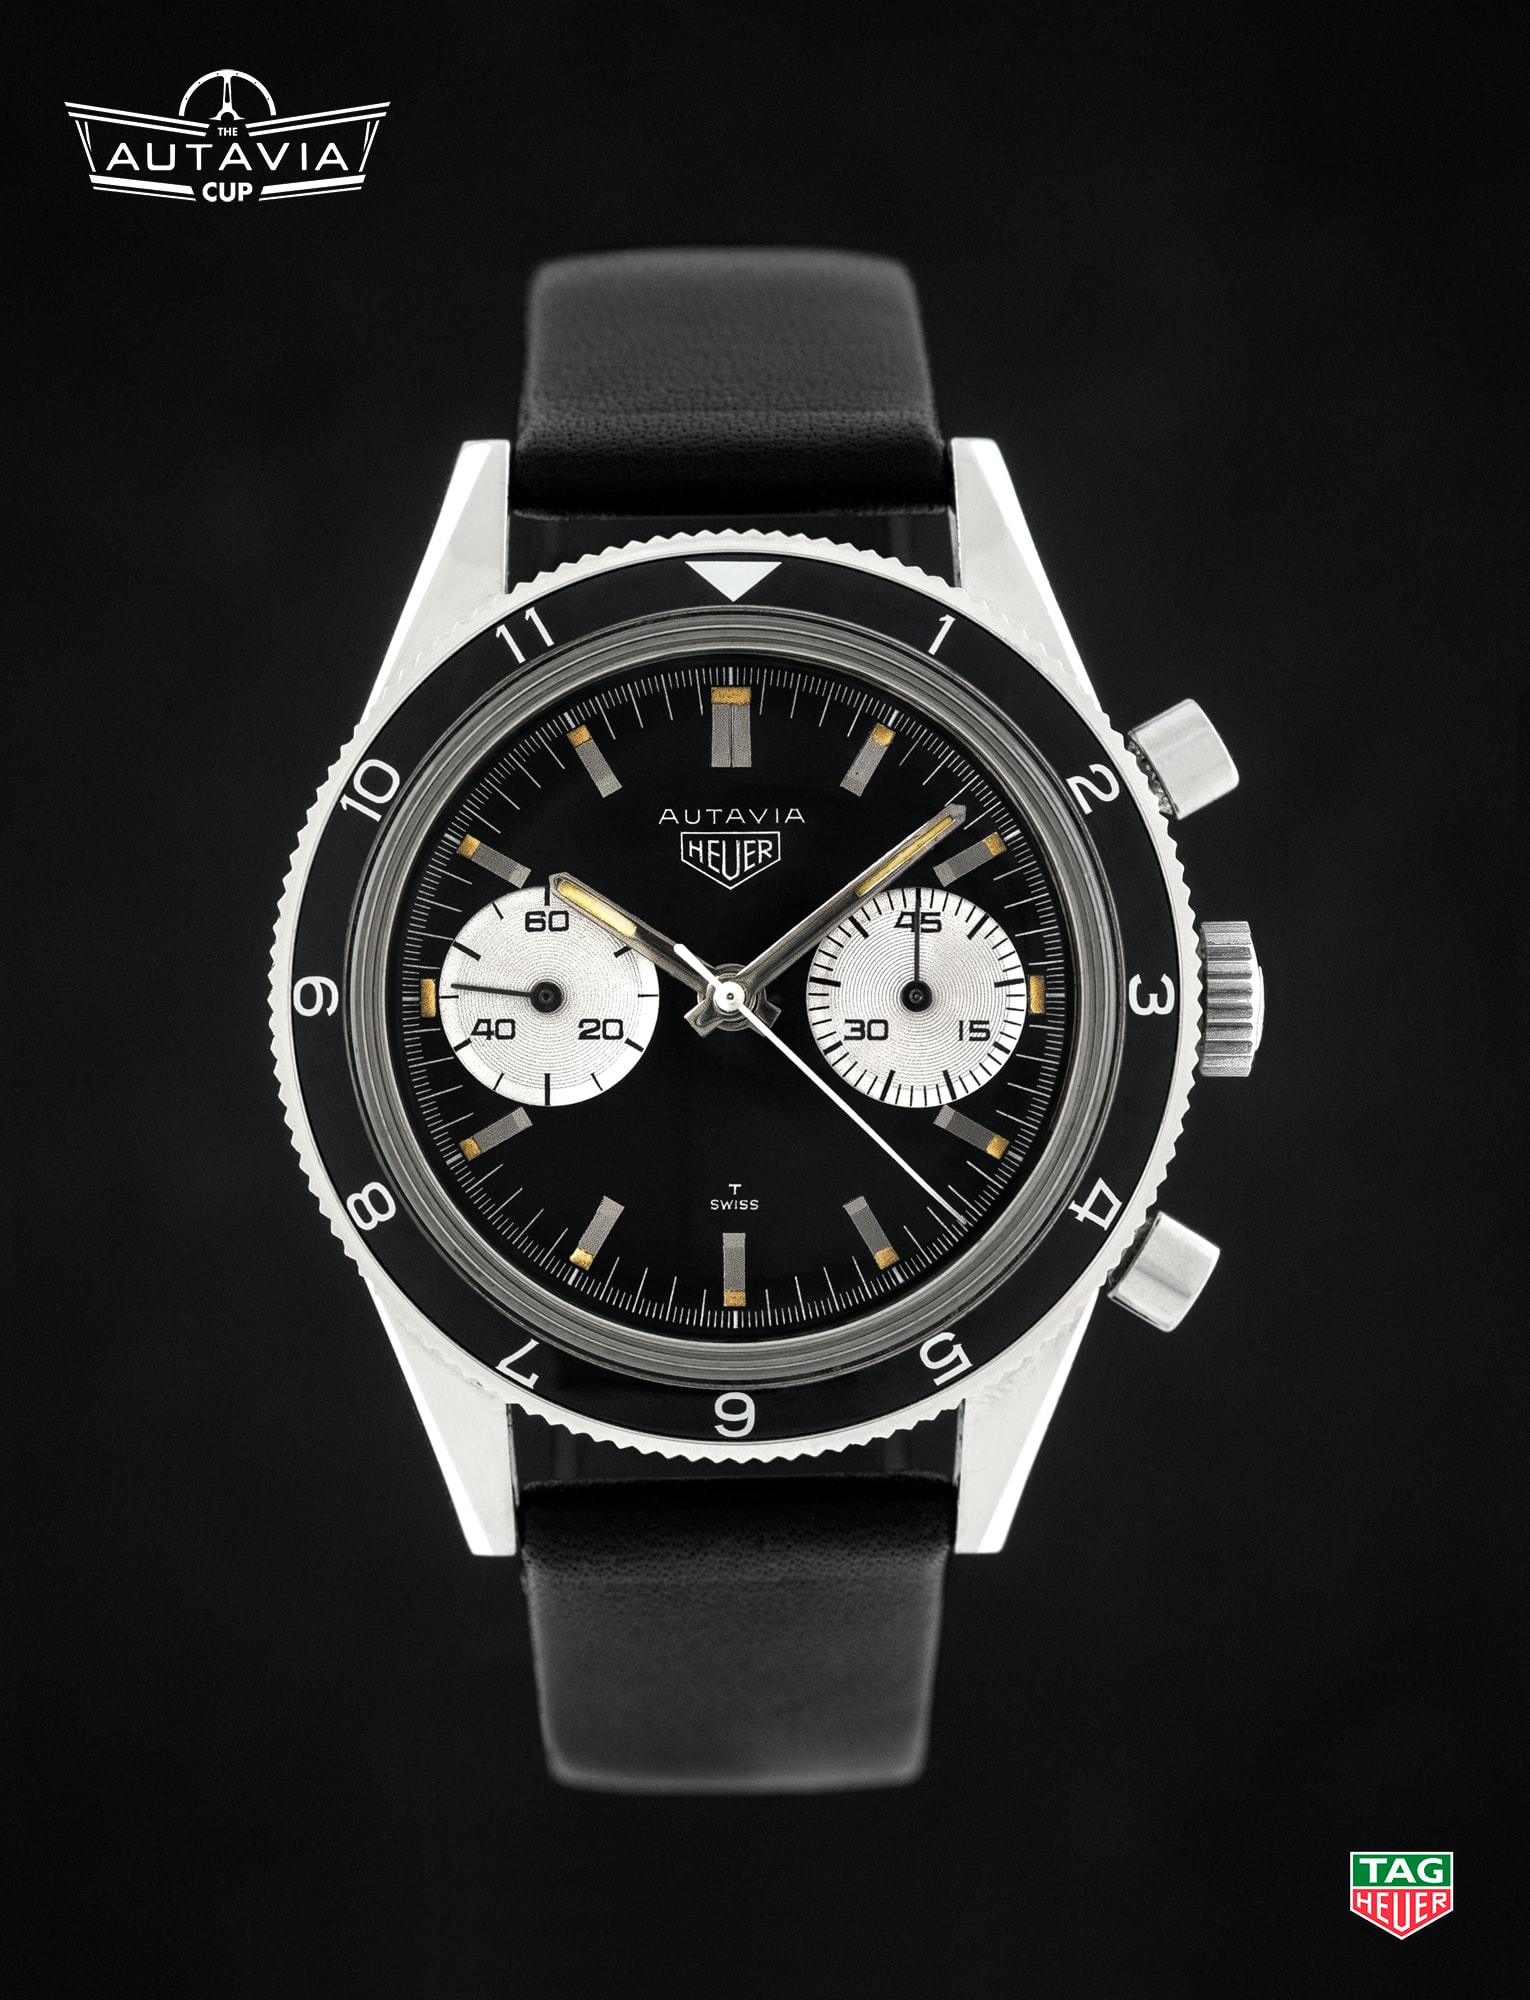 Heuer Autavia Ref. 3646 Mk3 TAG Heuer Will Relaunch The Autavia In 2017 – And Fans Get To Choose The Model TAG Heuer Will Relaunch The Autavia In 2017 – And Fans Get To Choose The Model 06 3646 Mk3